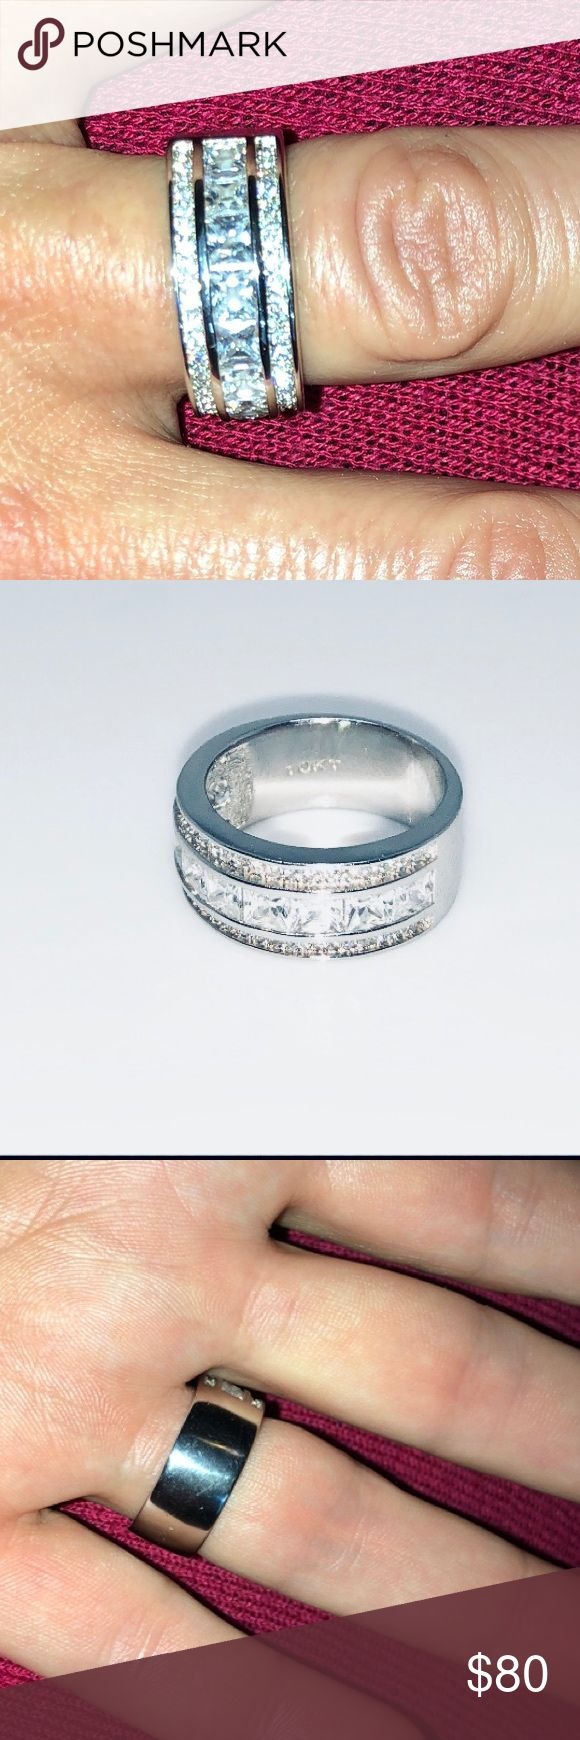 10k White Gold Filled AAAAA 3Ct PrincessCut Sz 7.5 10k White Gold Filled (5)AAAAA 3 Carat Princess Cut invisible Setting 9 Stones Plus Top and Bottom Channel Set Round Stones. (5)A CZ's Cover Half of the Entire Band. Stamped 10k. Wedding Band Material✔️ Ring Size 7.5 Jewelry Rings